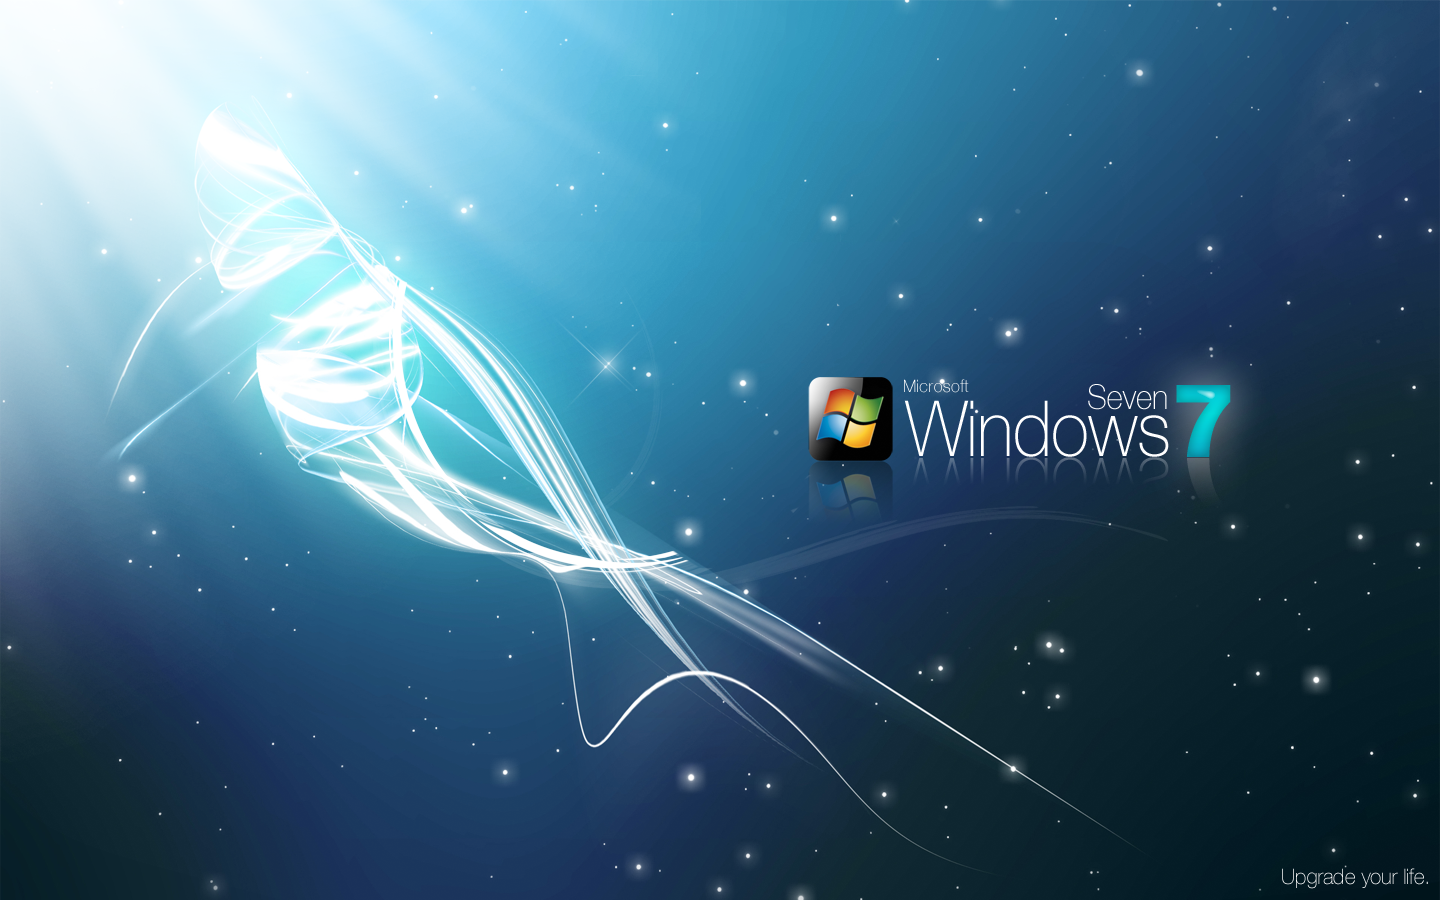 free windows 7 themes download windows 7 skins and windows